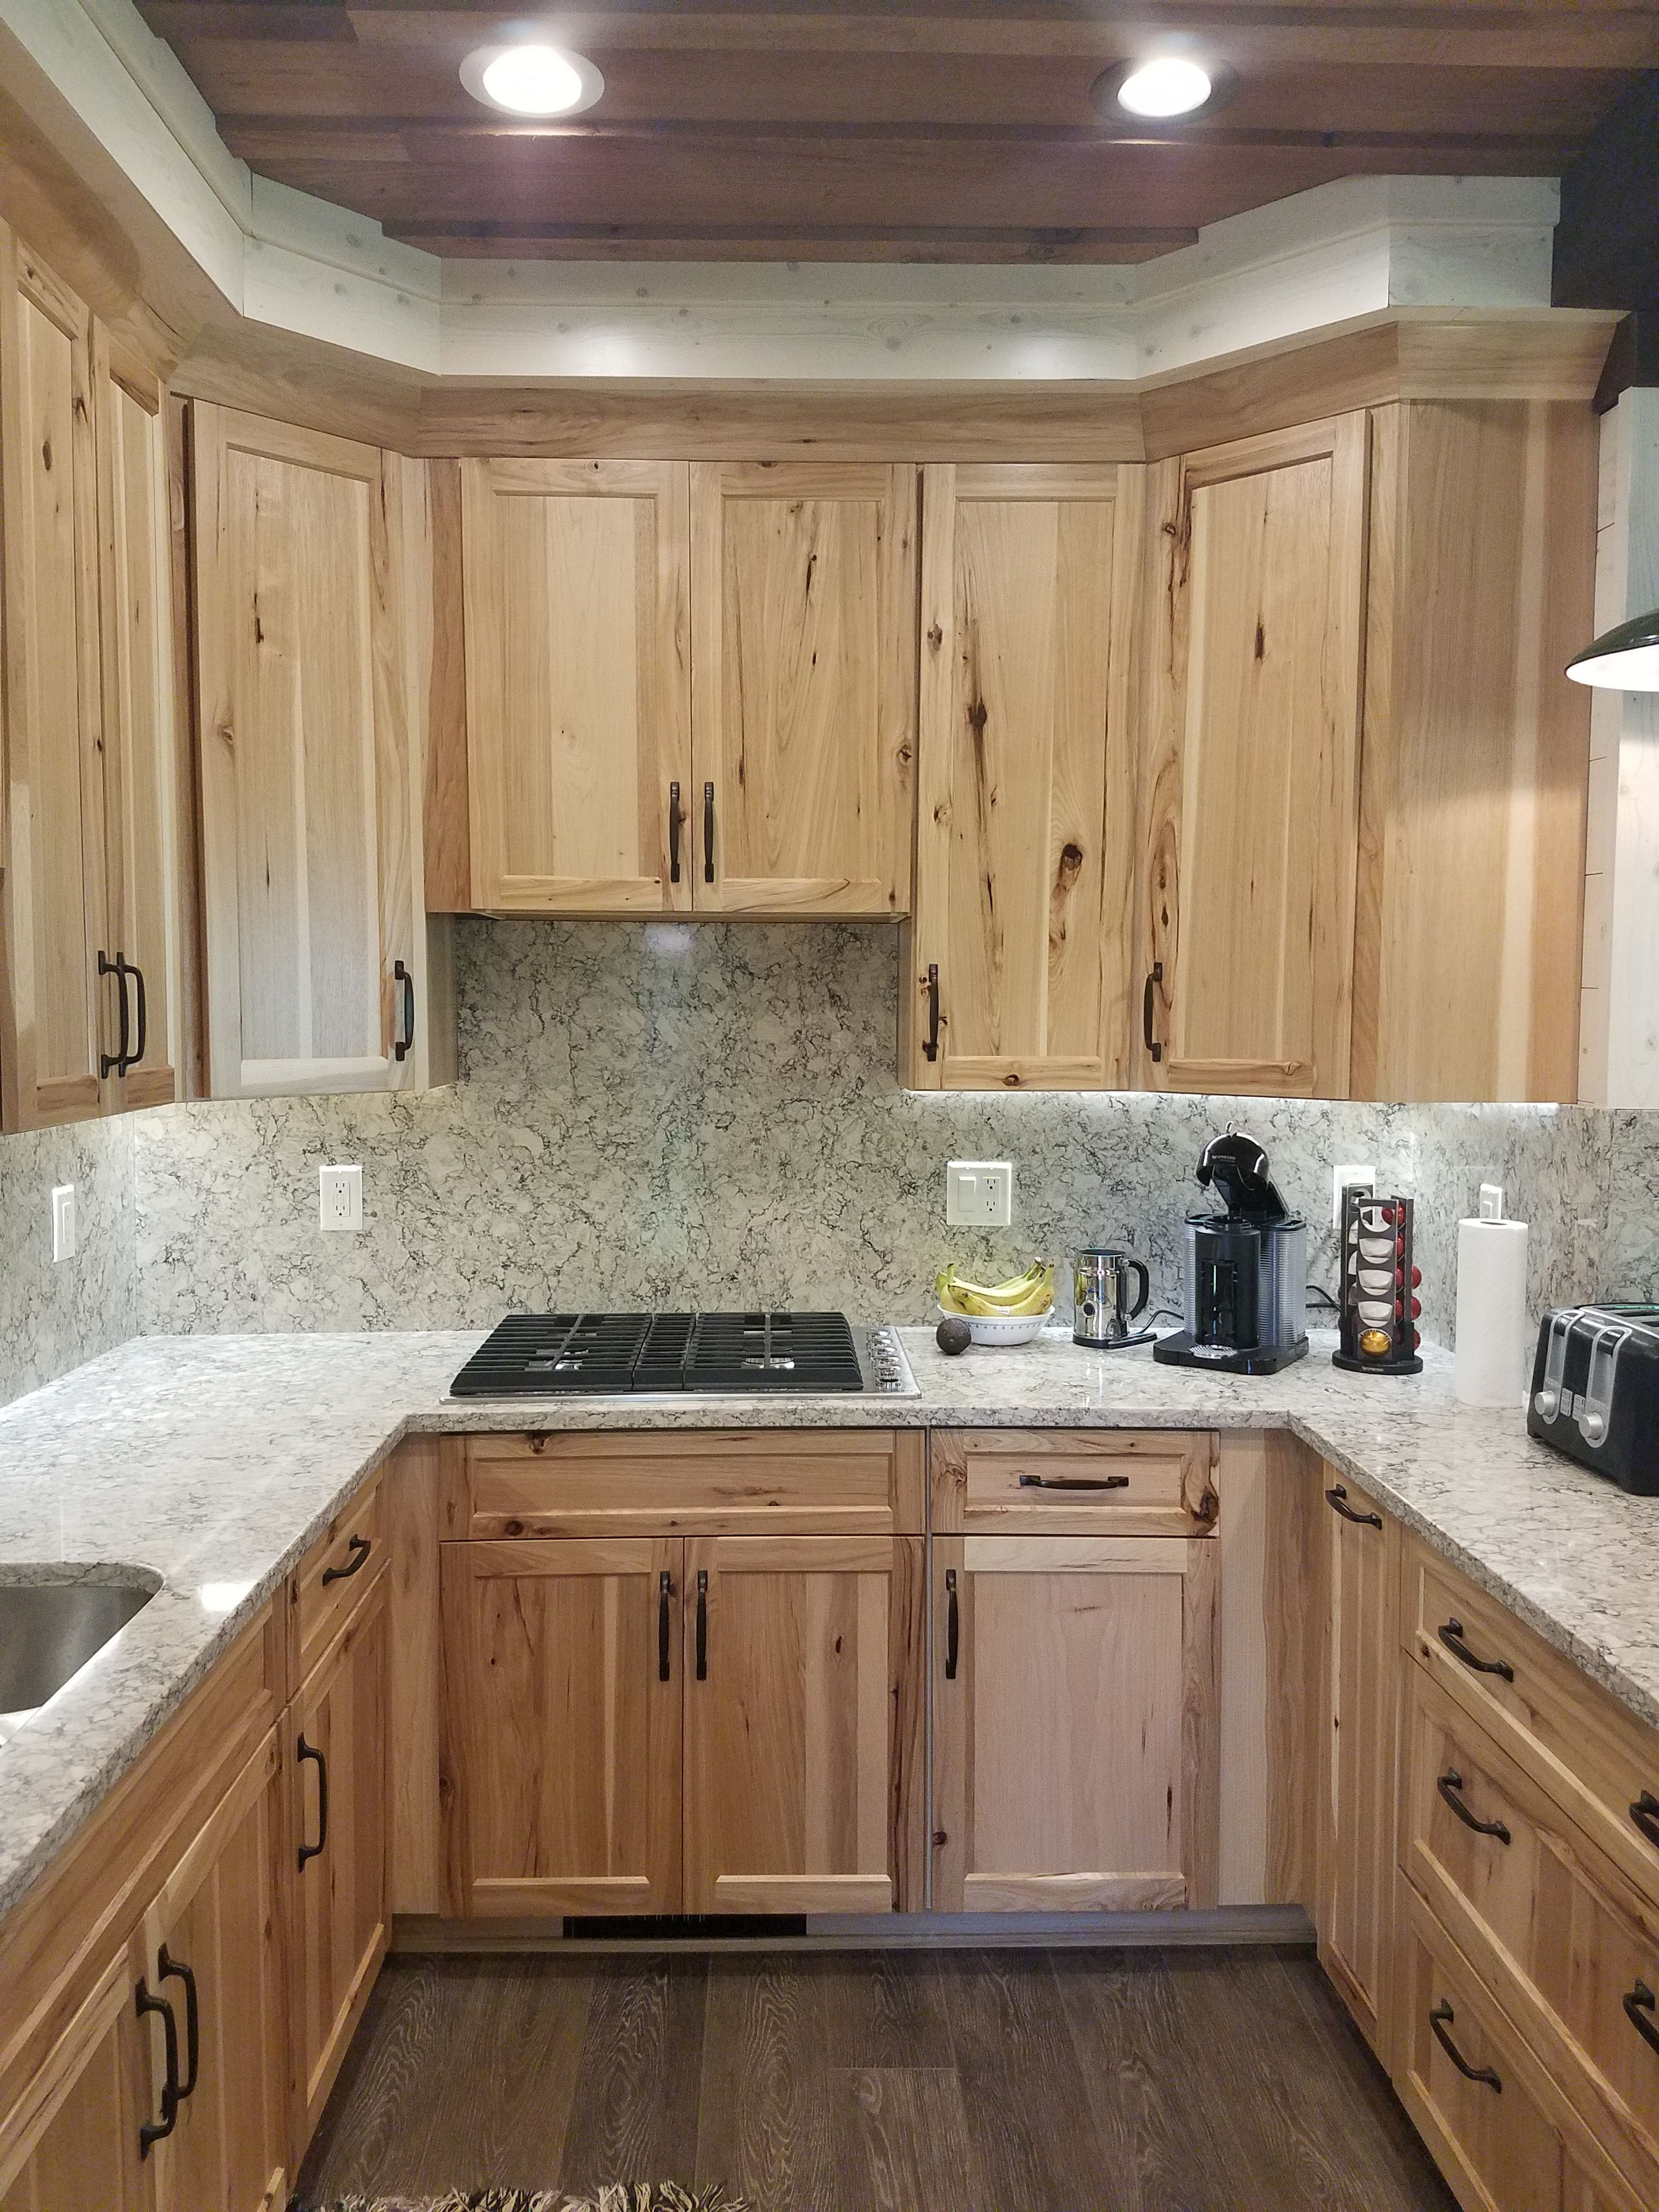 Kitchen Countertops With White Cabinets Budget Counter Tops Kitchen Countertops With White Cabi Hickory Kitchen Cabinets New Kitchen Cabinets Hickory Cabinets